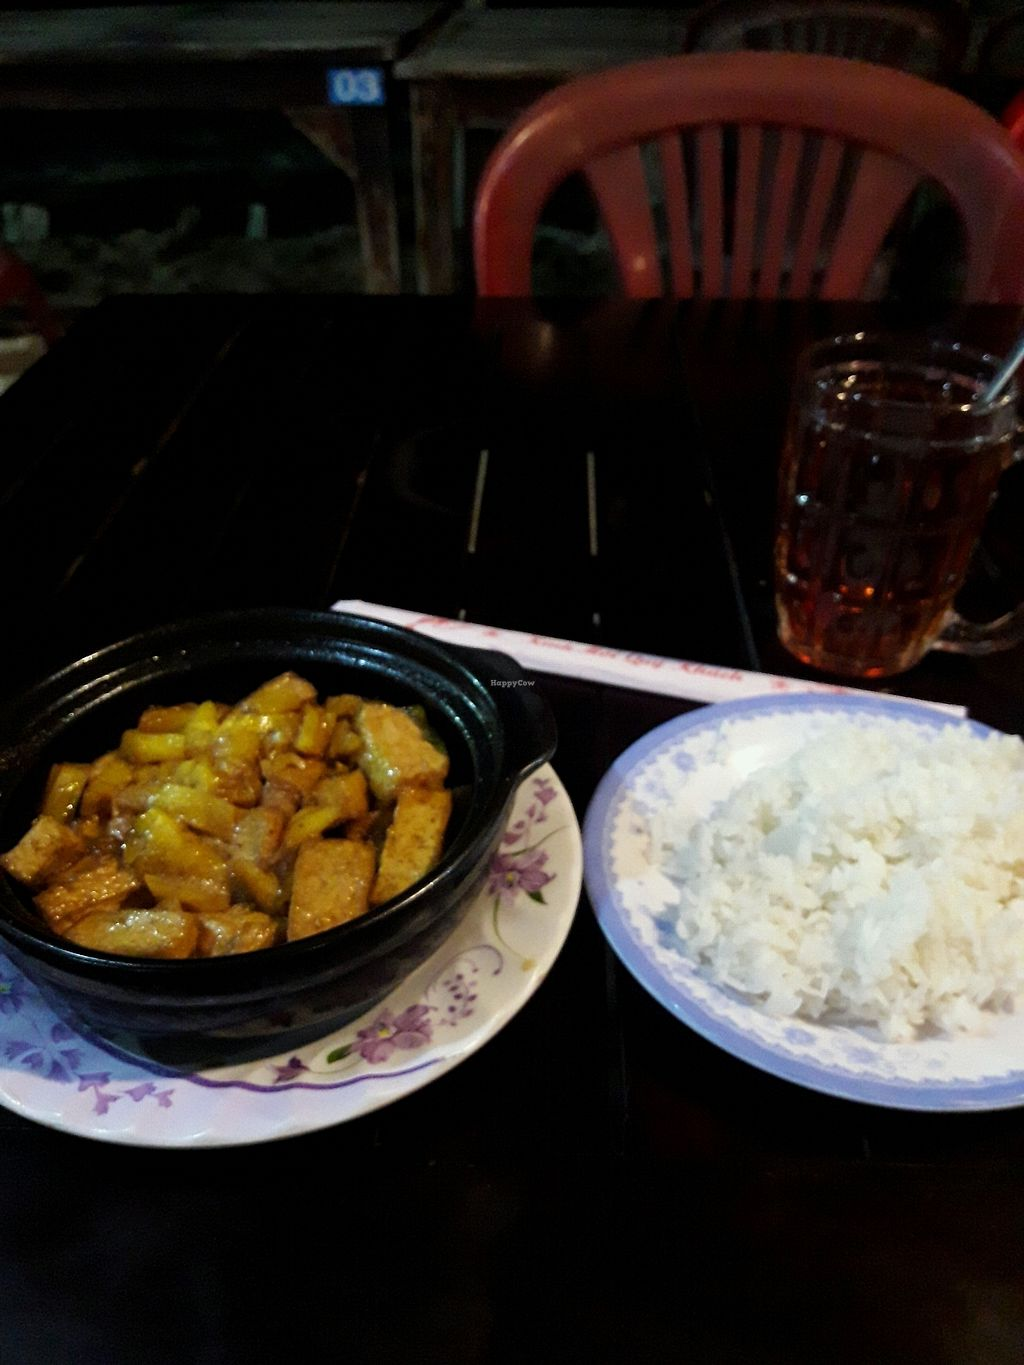 """Photo of Lam Tong Quan  by <a href=""""/members/profile/FineGiebler"""">FineGiebler</a> <br/>braised tofu clay pot <br/> February 3, 2018  - <a href='/contact/abuse/image/69812/354474'>Report</a>"""